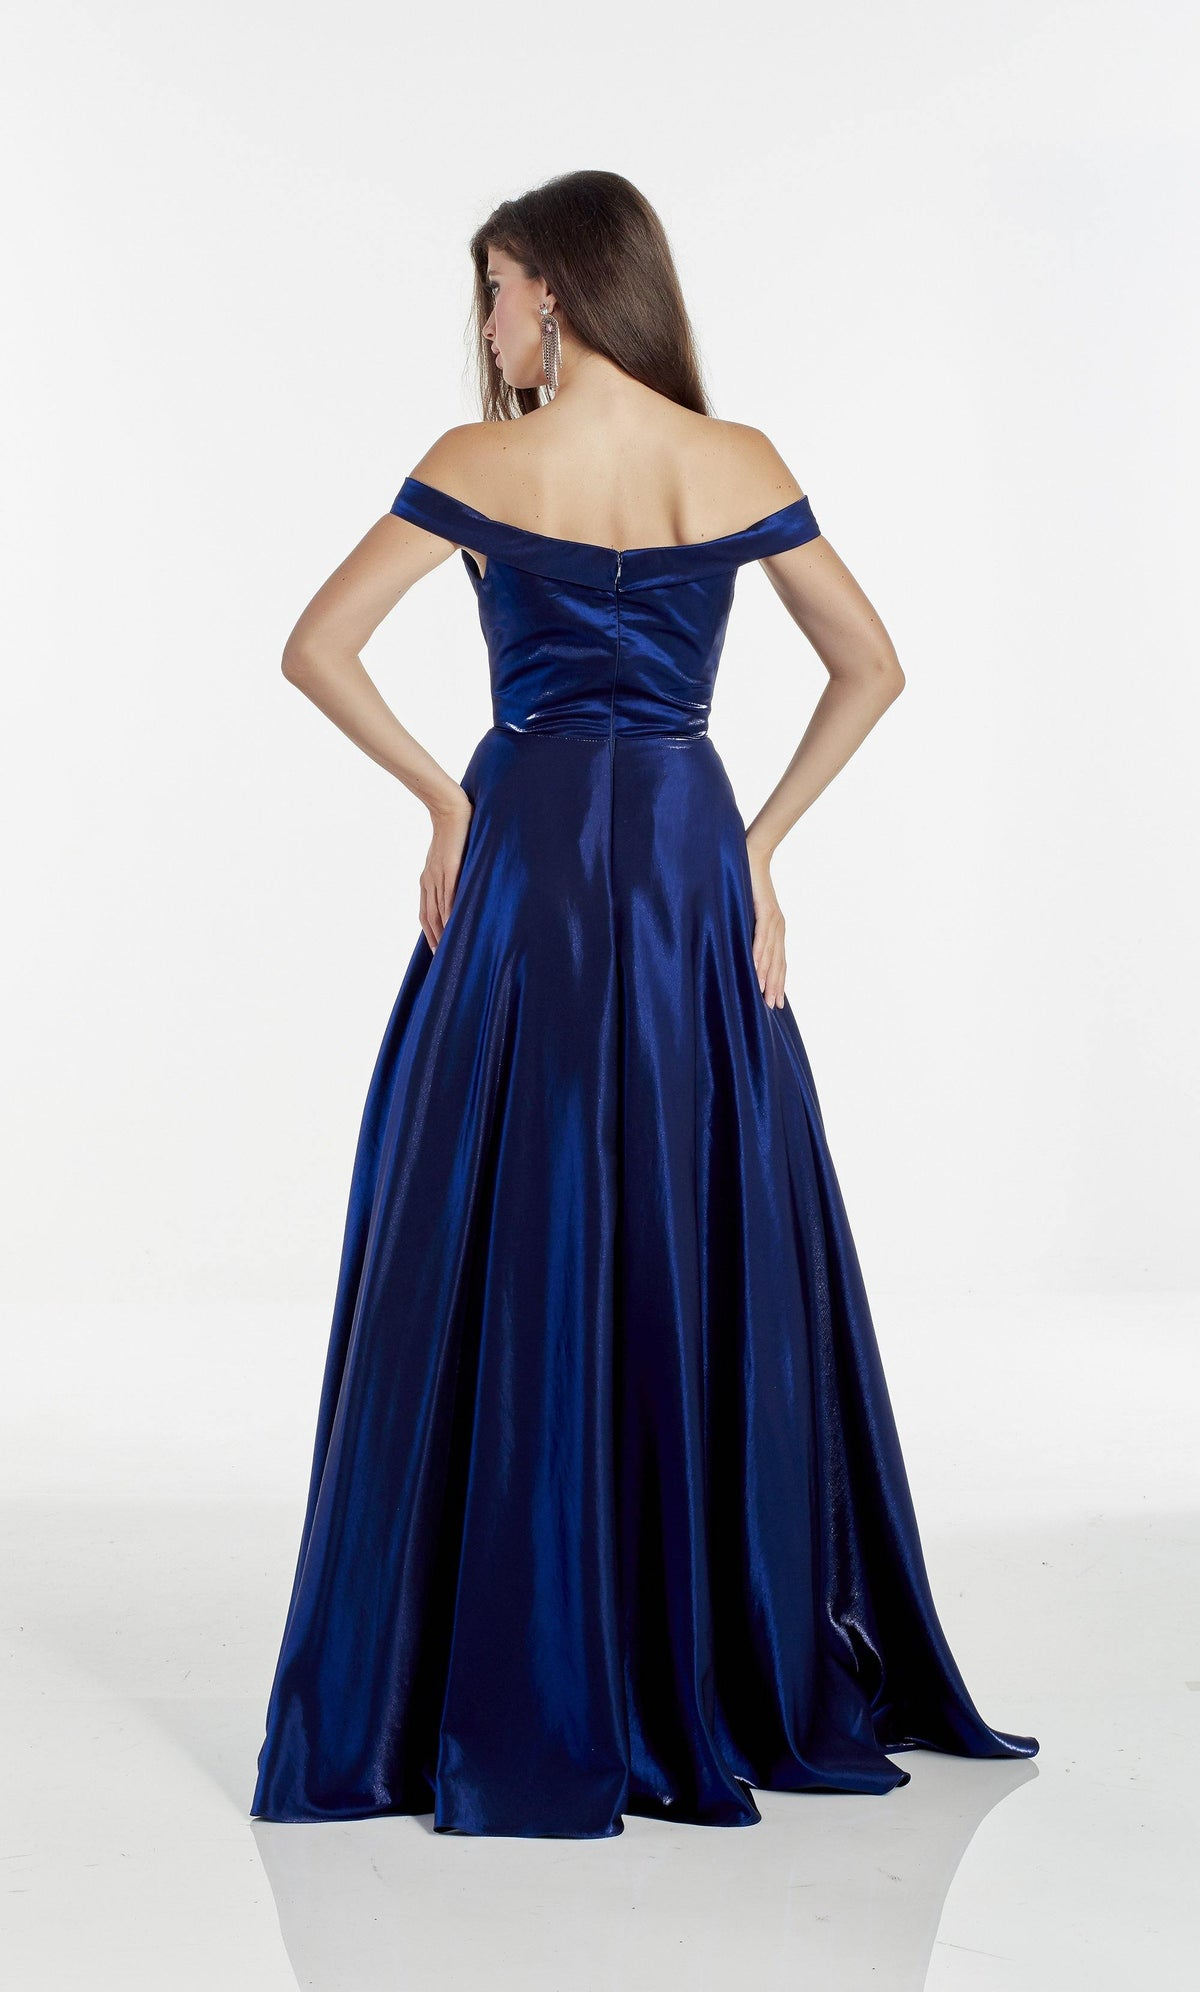 Navy off the shoulder shimmer satin prom dress with an enclosed back and train